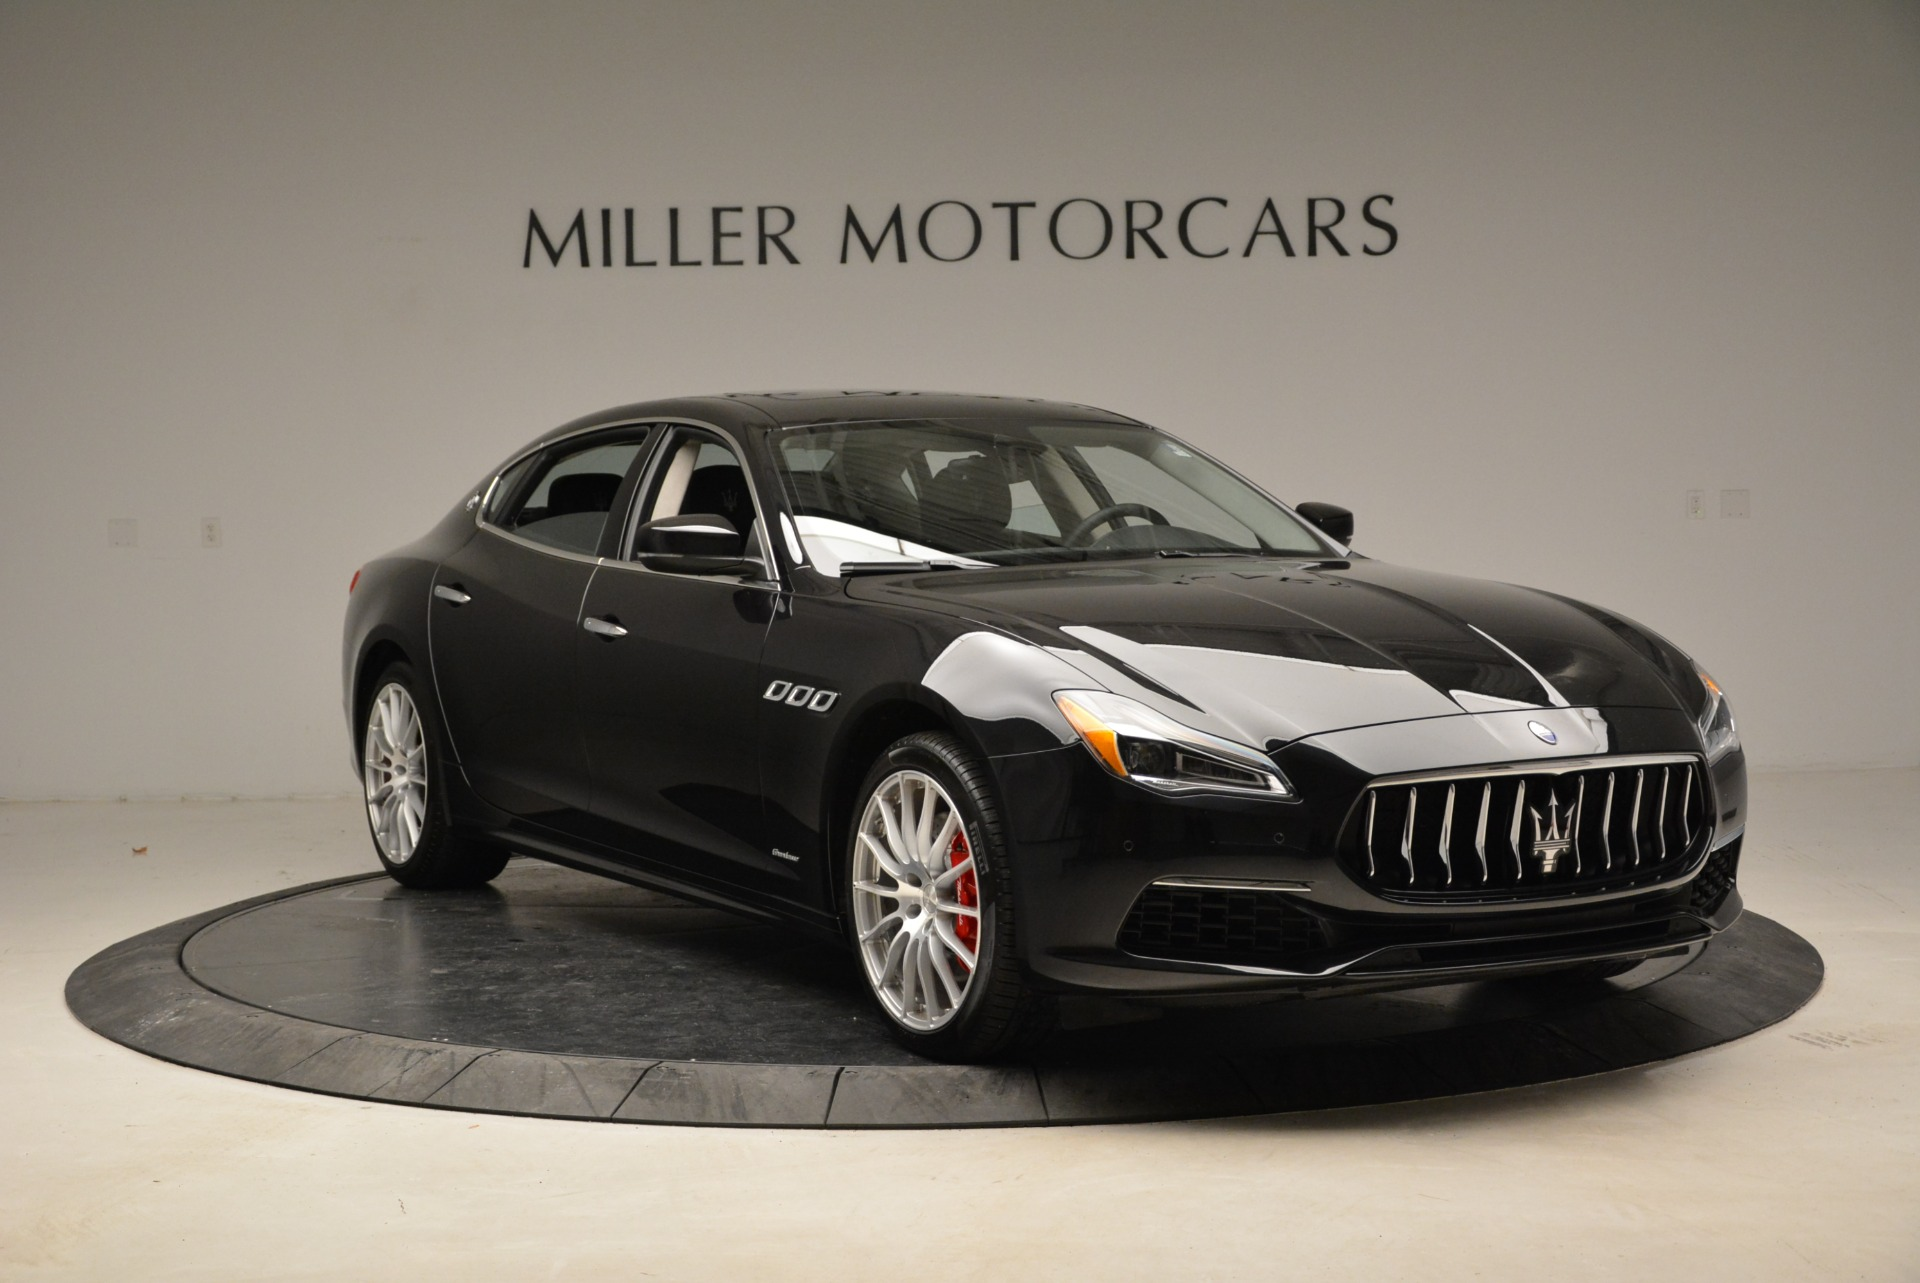 New 2018 Maserati Quattroporte S Q4 GranLusso For Sale In Westport, CT 1705_p11